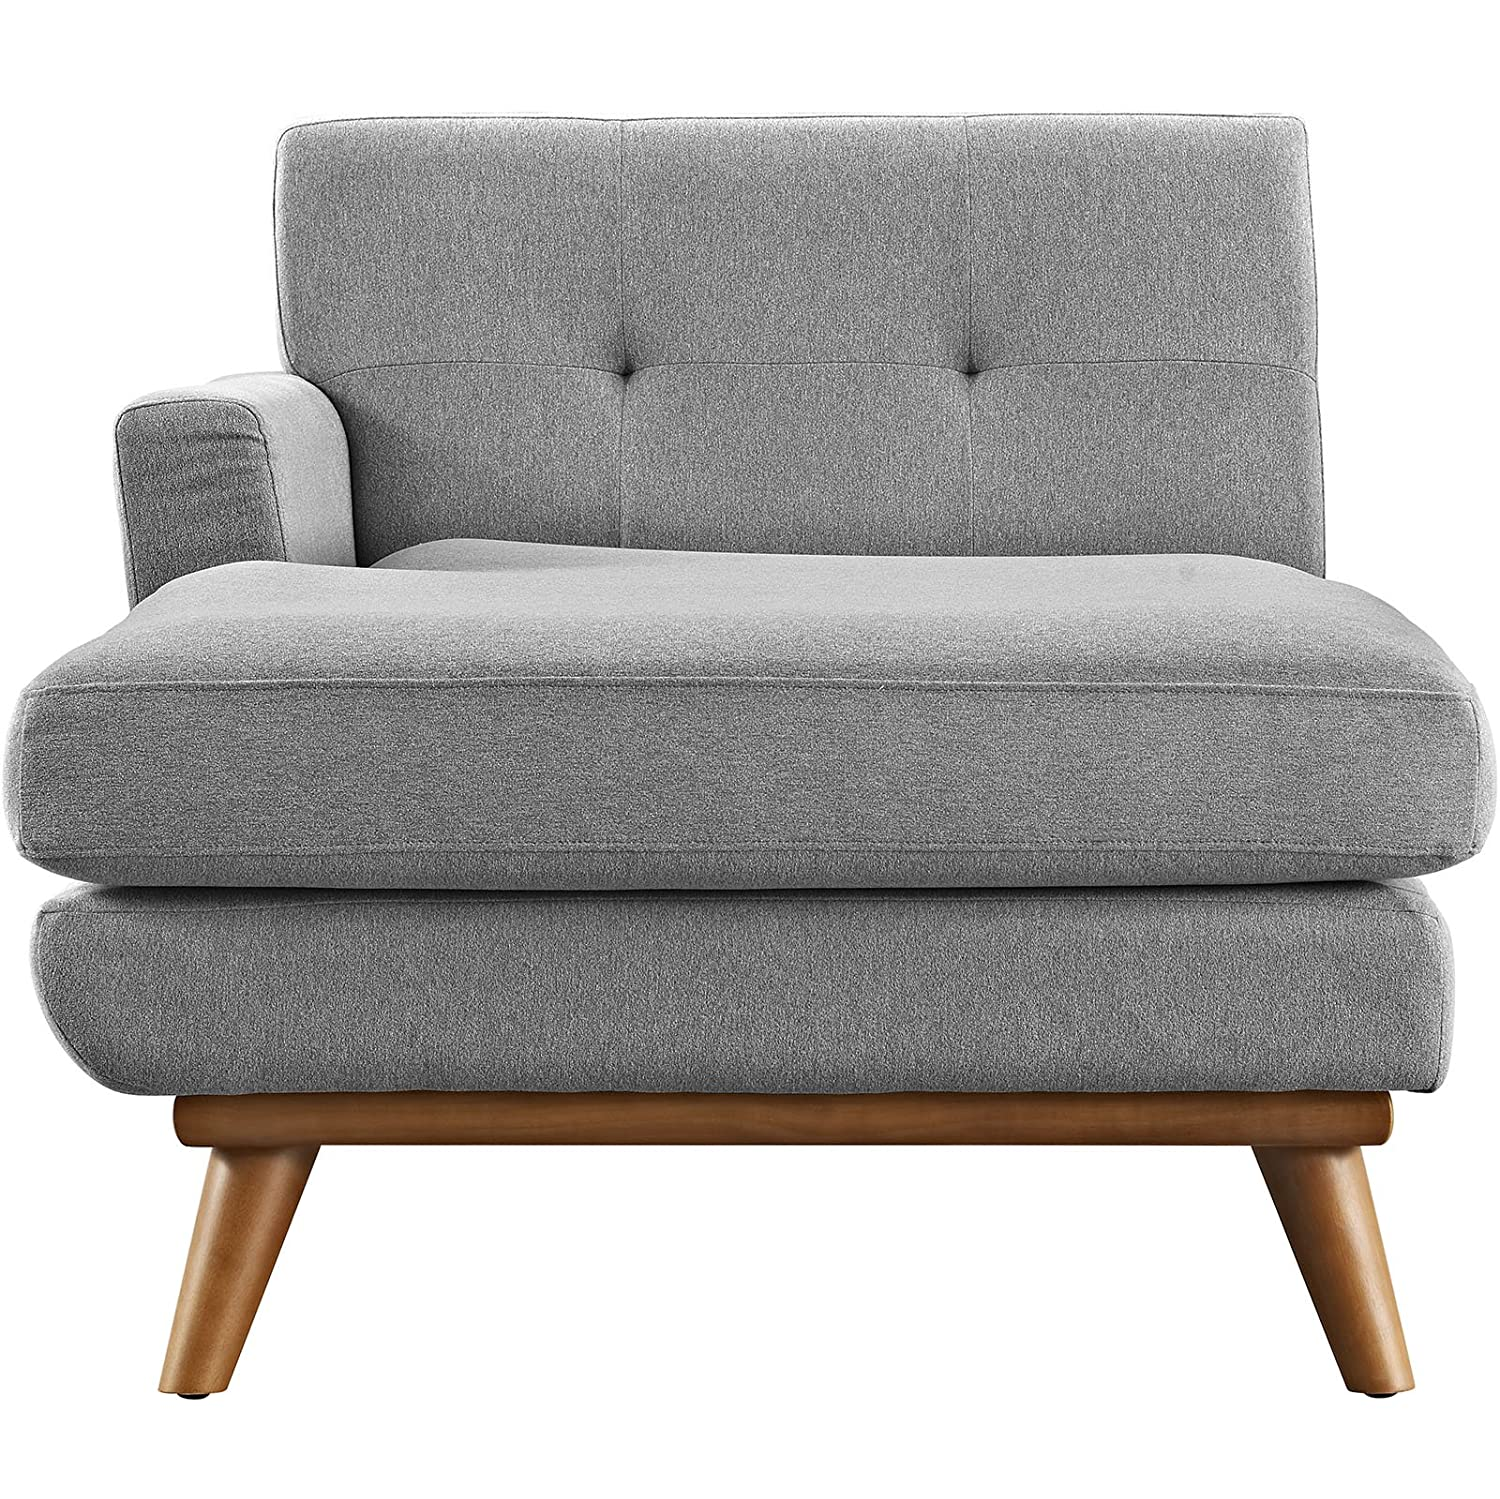 Engage Left-Arm Chaise - Expectation Gray